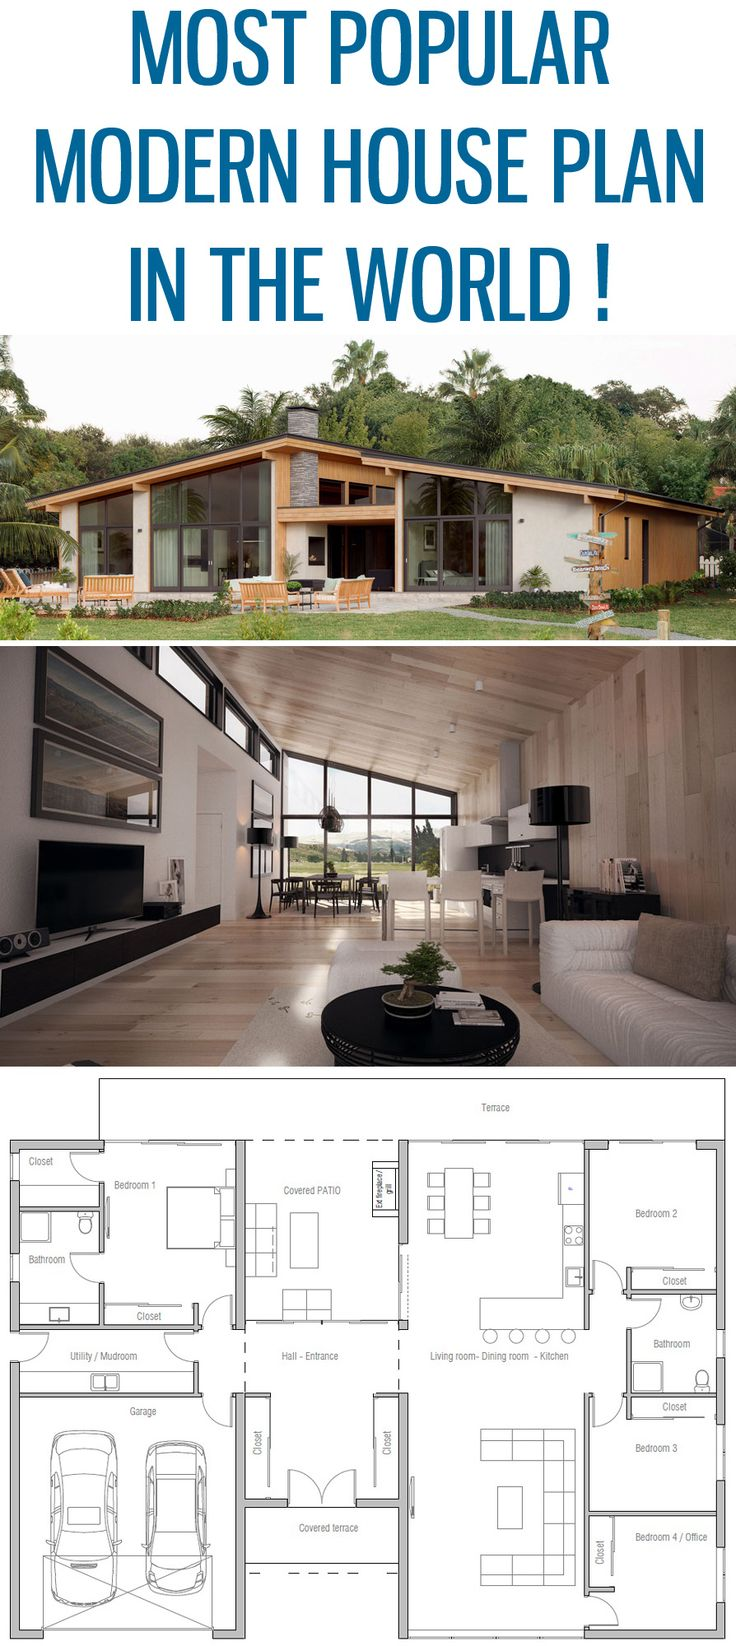 Most popular modern house plan ! Home Plan, Floor plan, House Plan, architecture